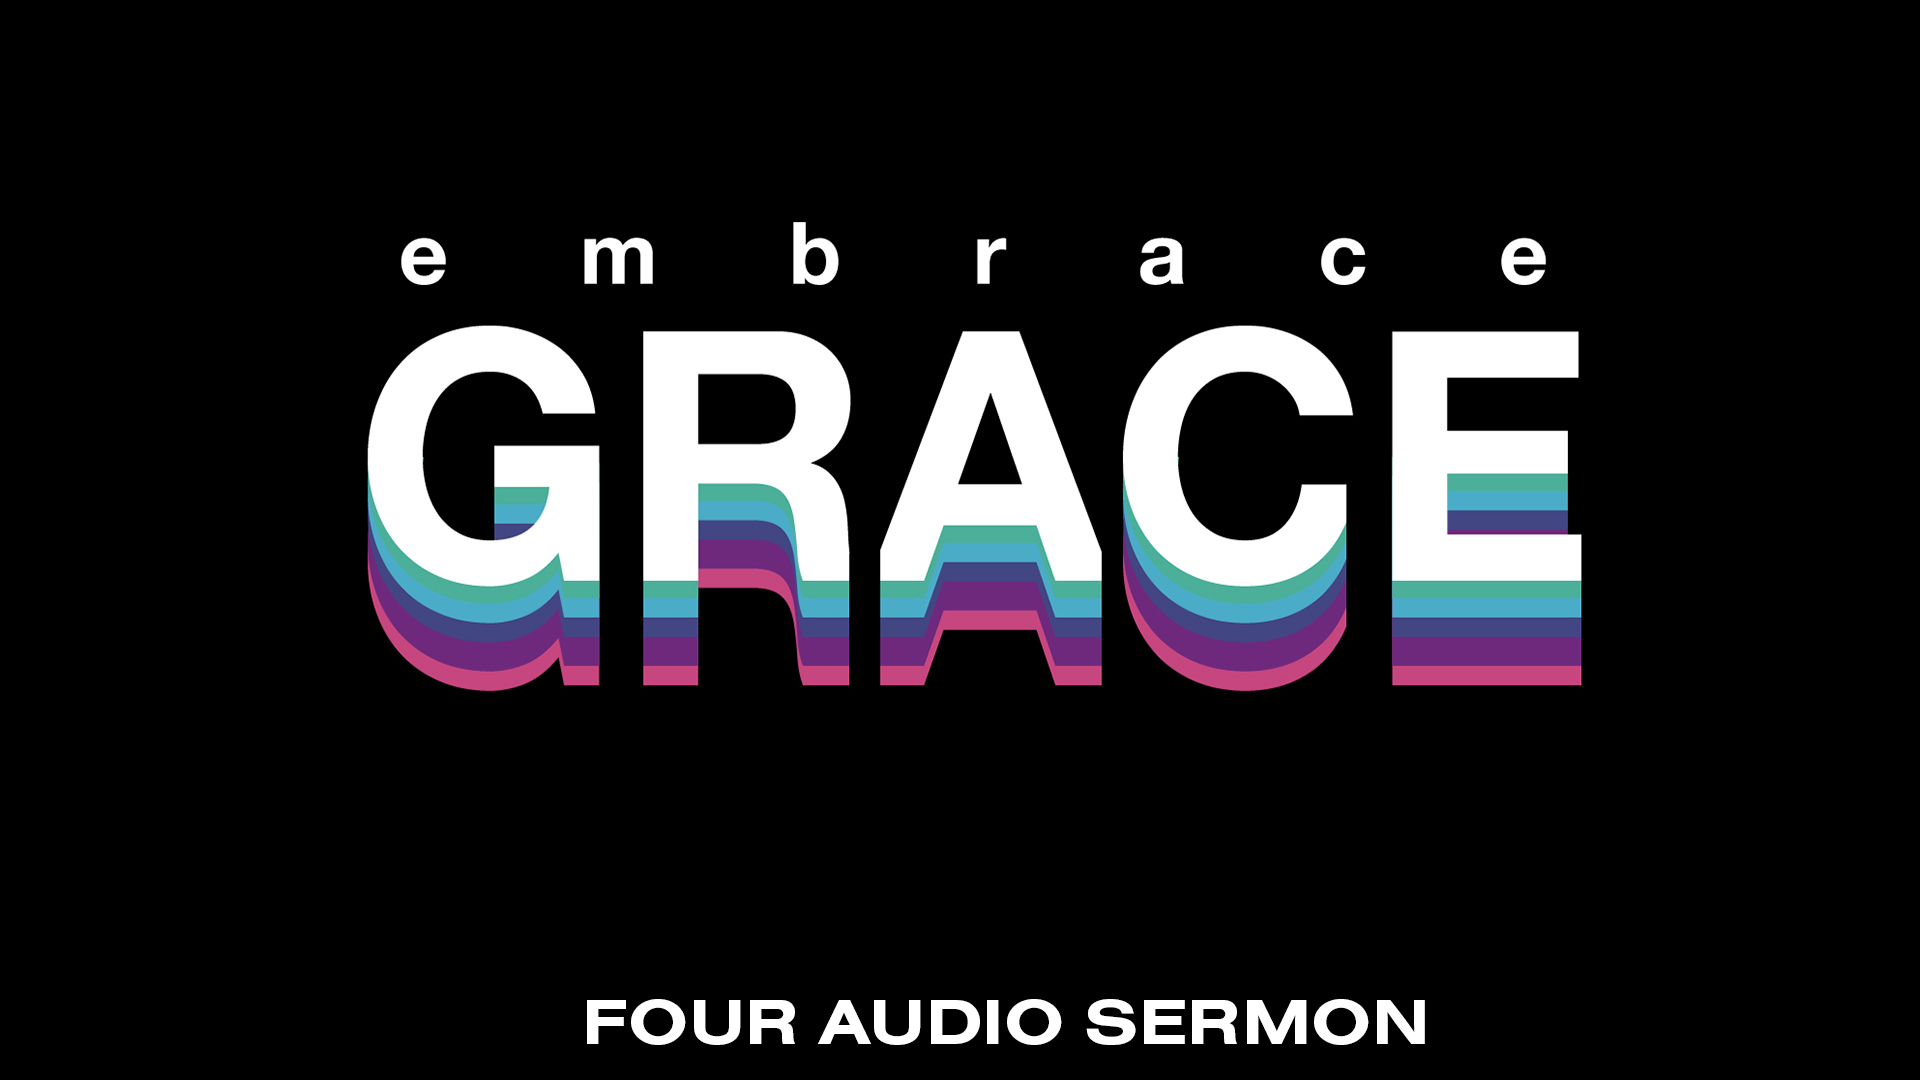 https://vladimirsavchuk.com/resources/embrace-grace-audio-series/